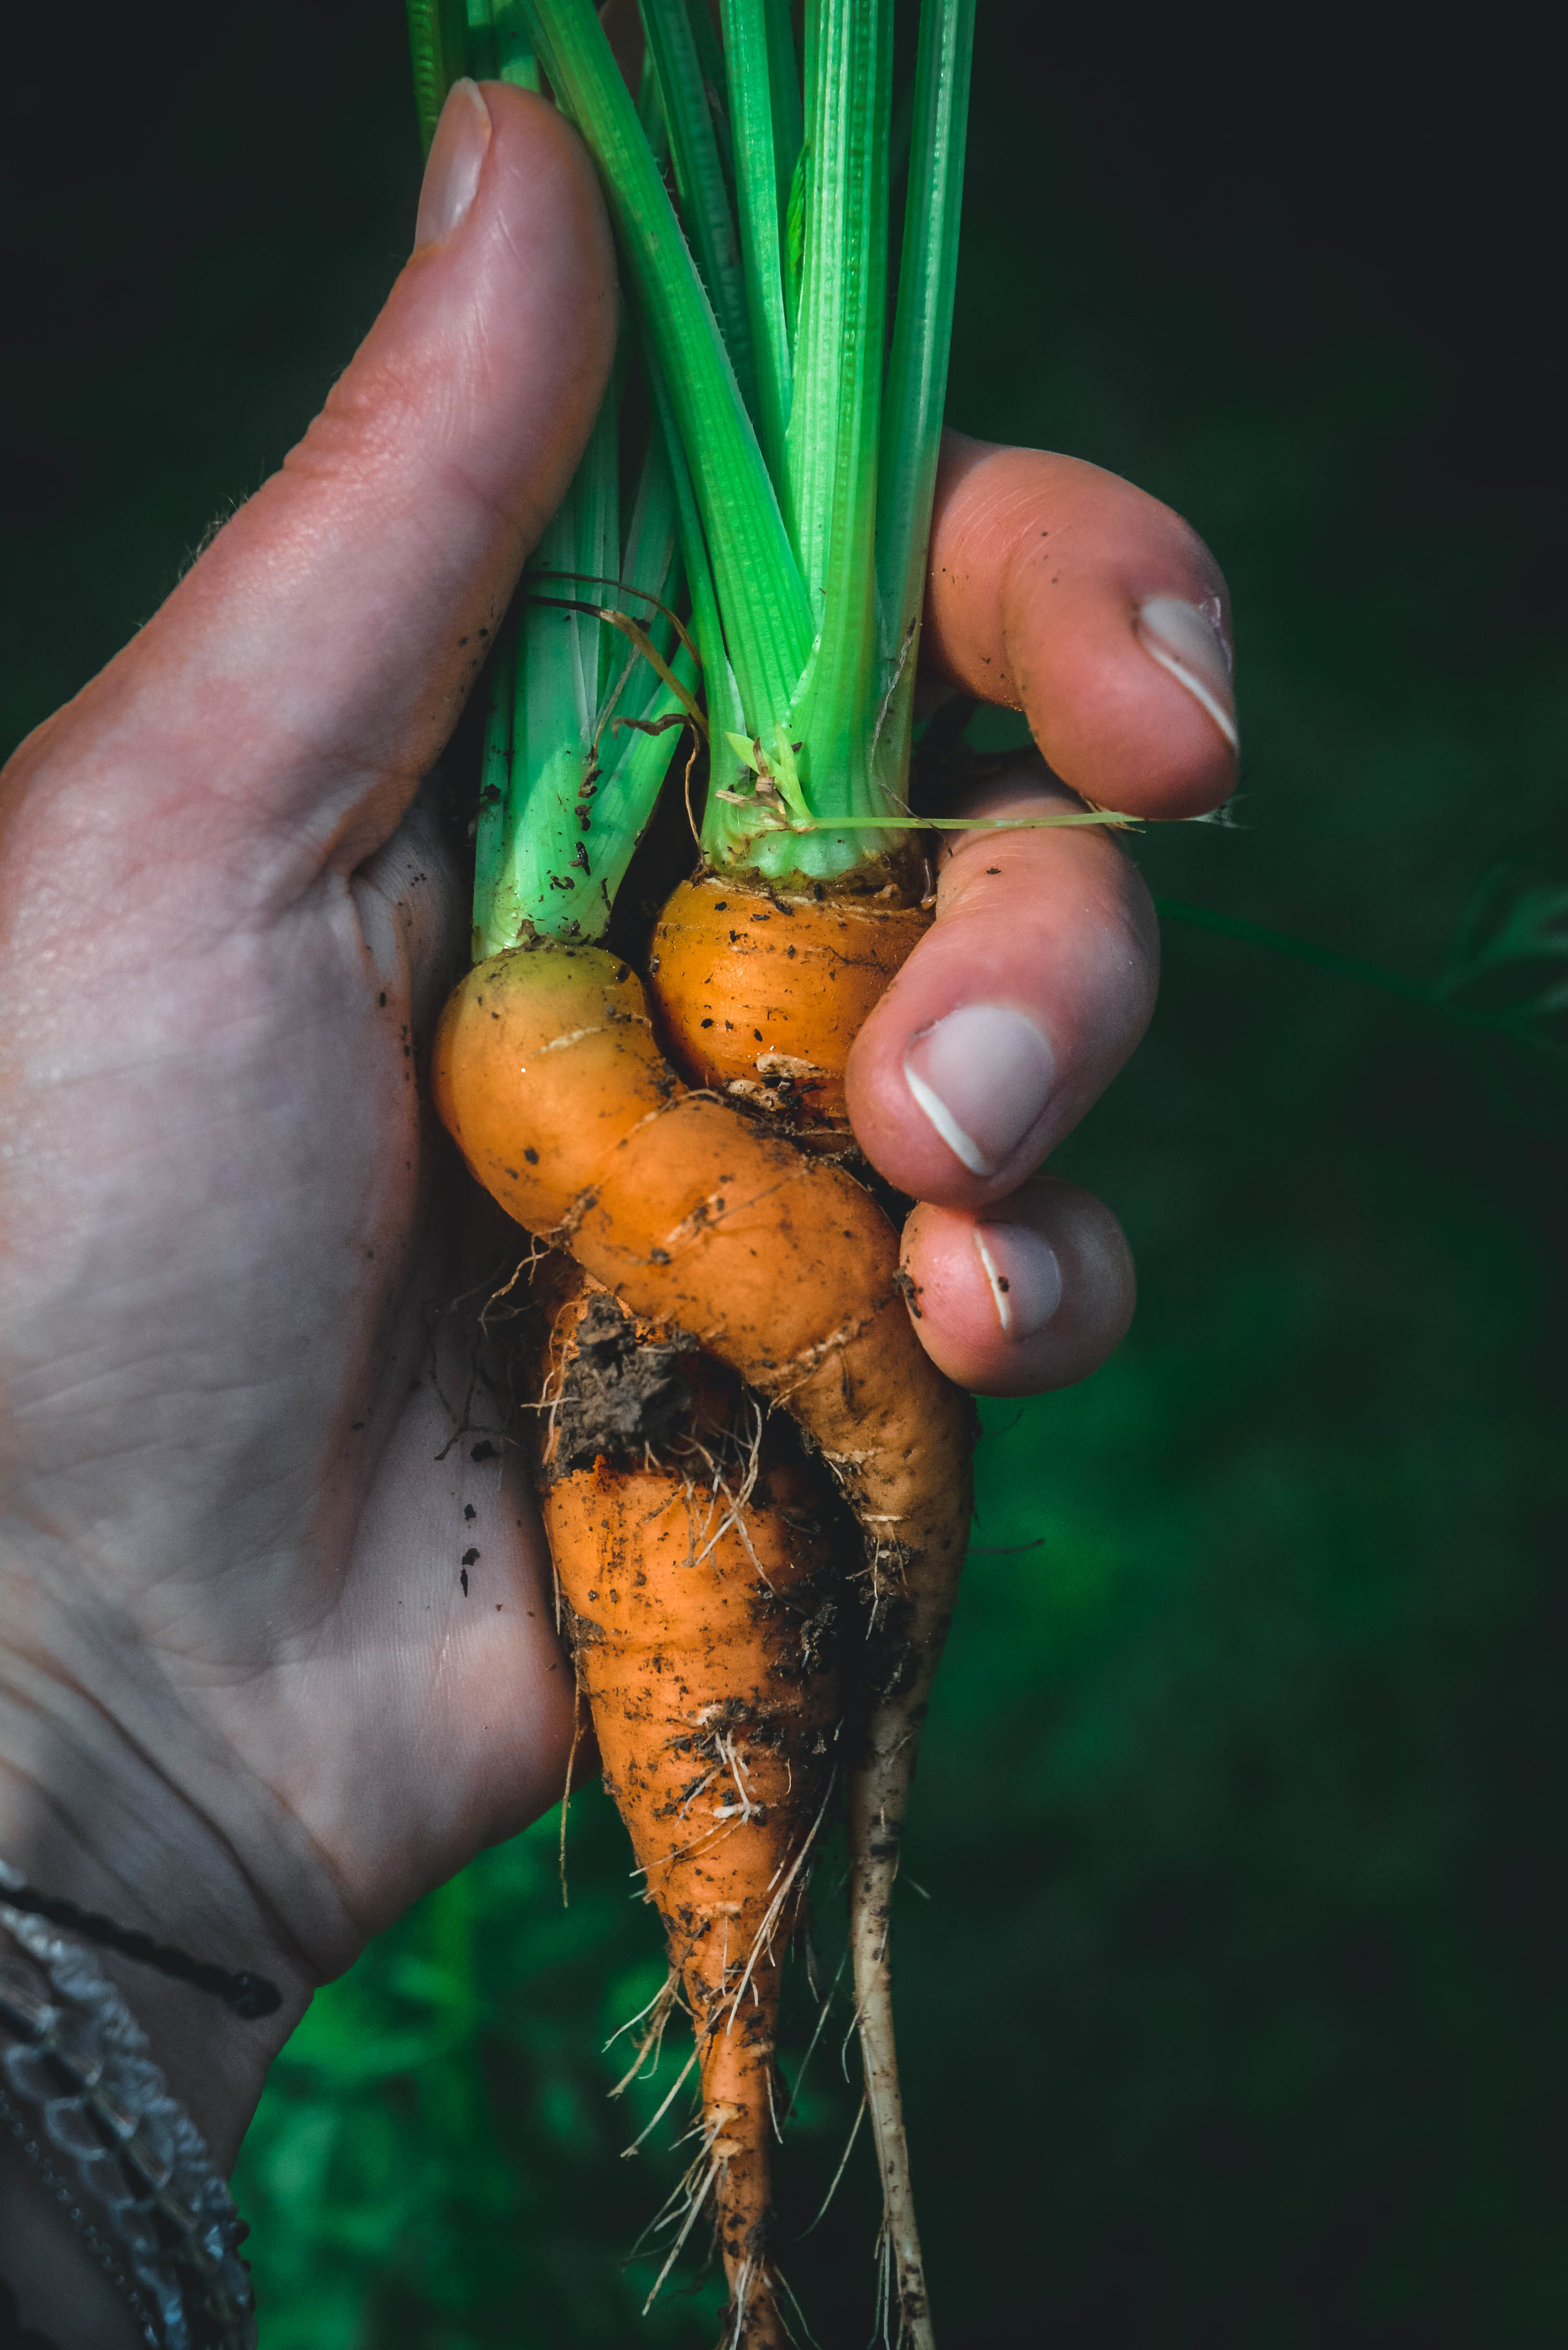 hand and carrots